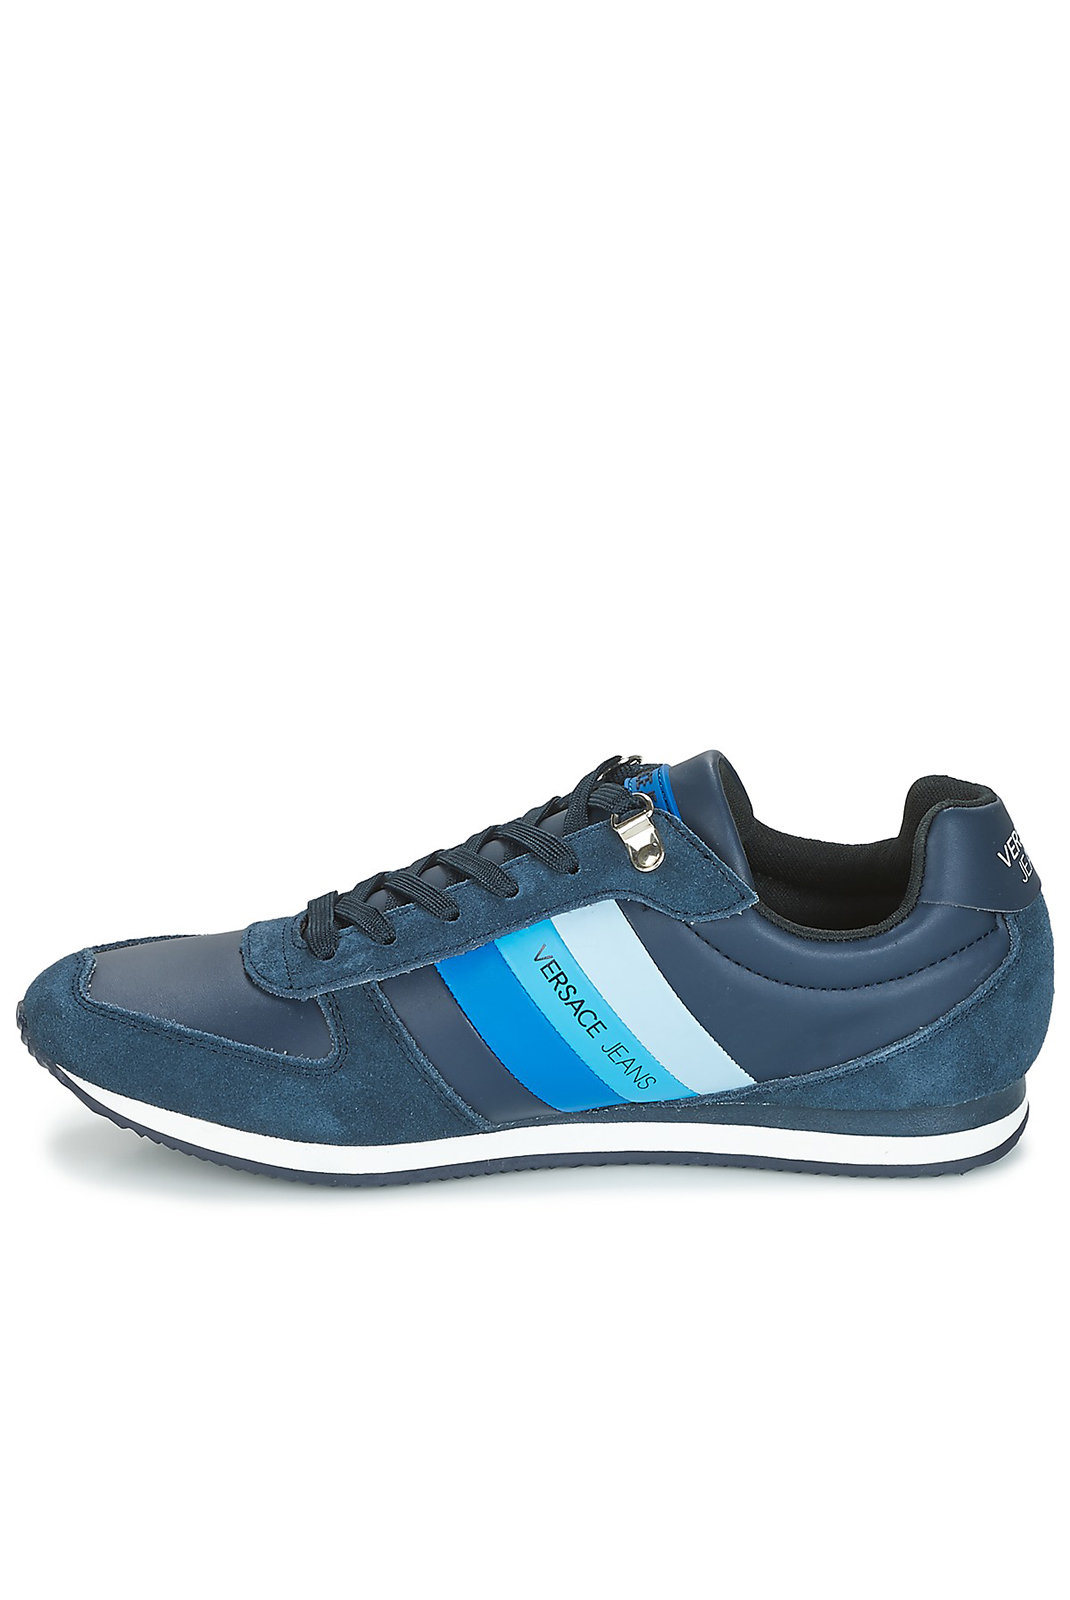 Chaussures   Versace Jeans YRBSA1 ME8 BLUE NAVY